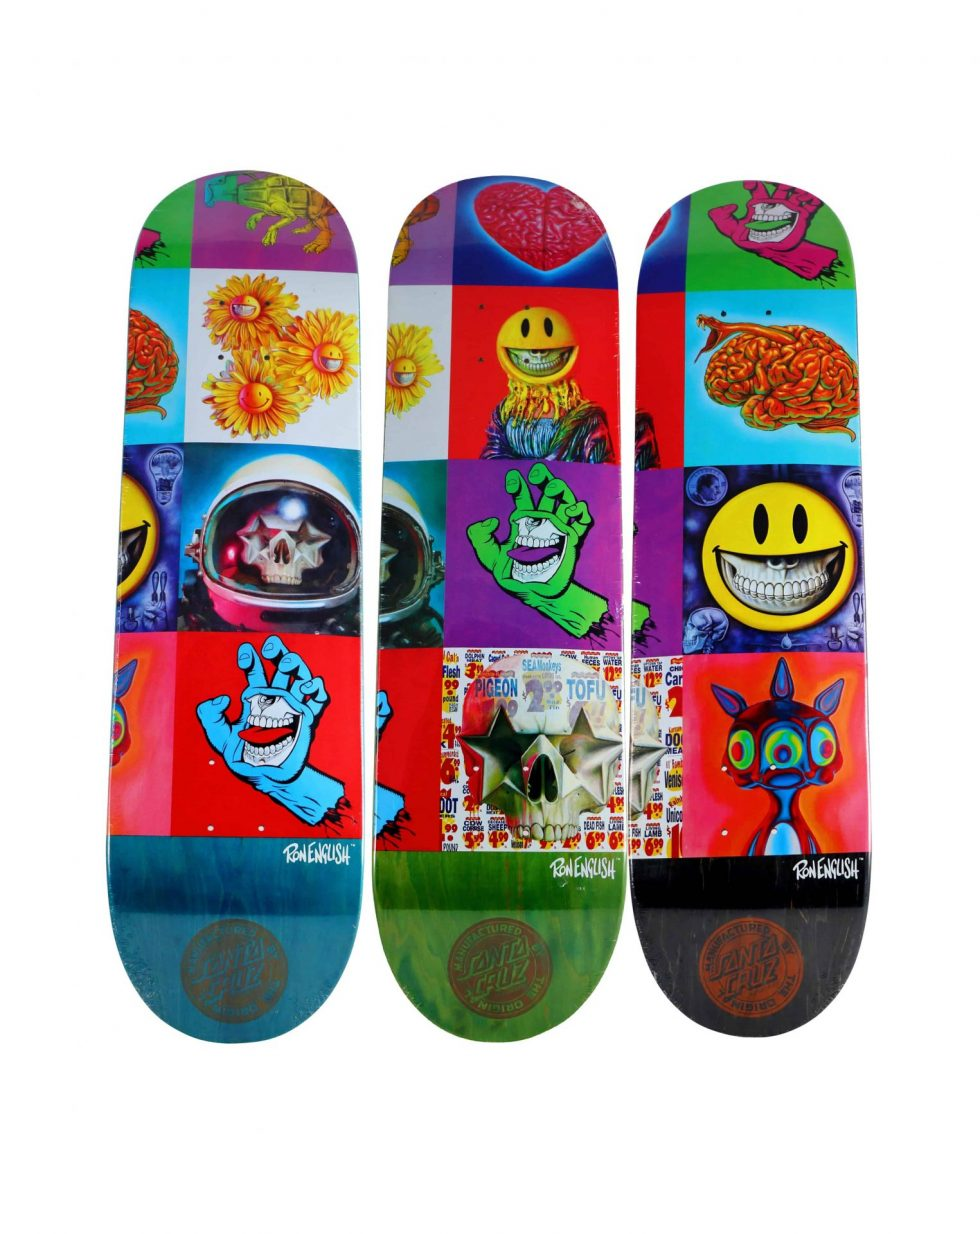 7334 Ron English X Santa Cruz Popaganda Triptych Skateboard Set (1)